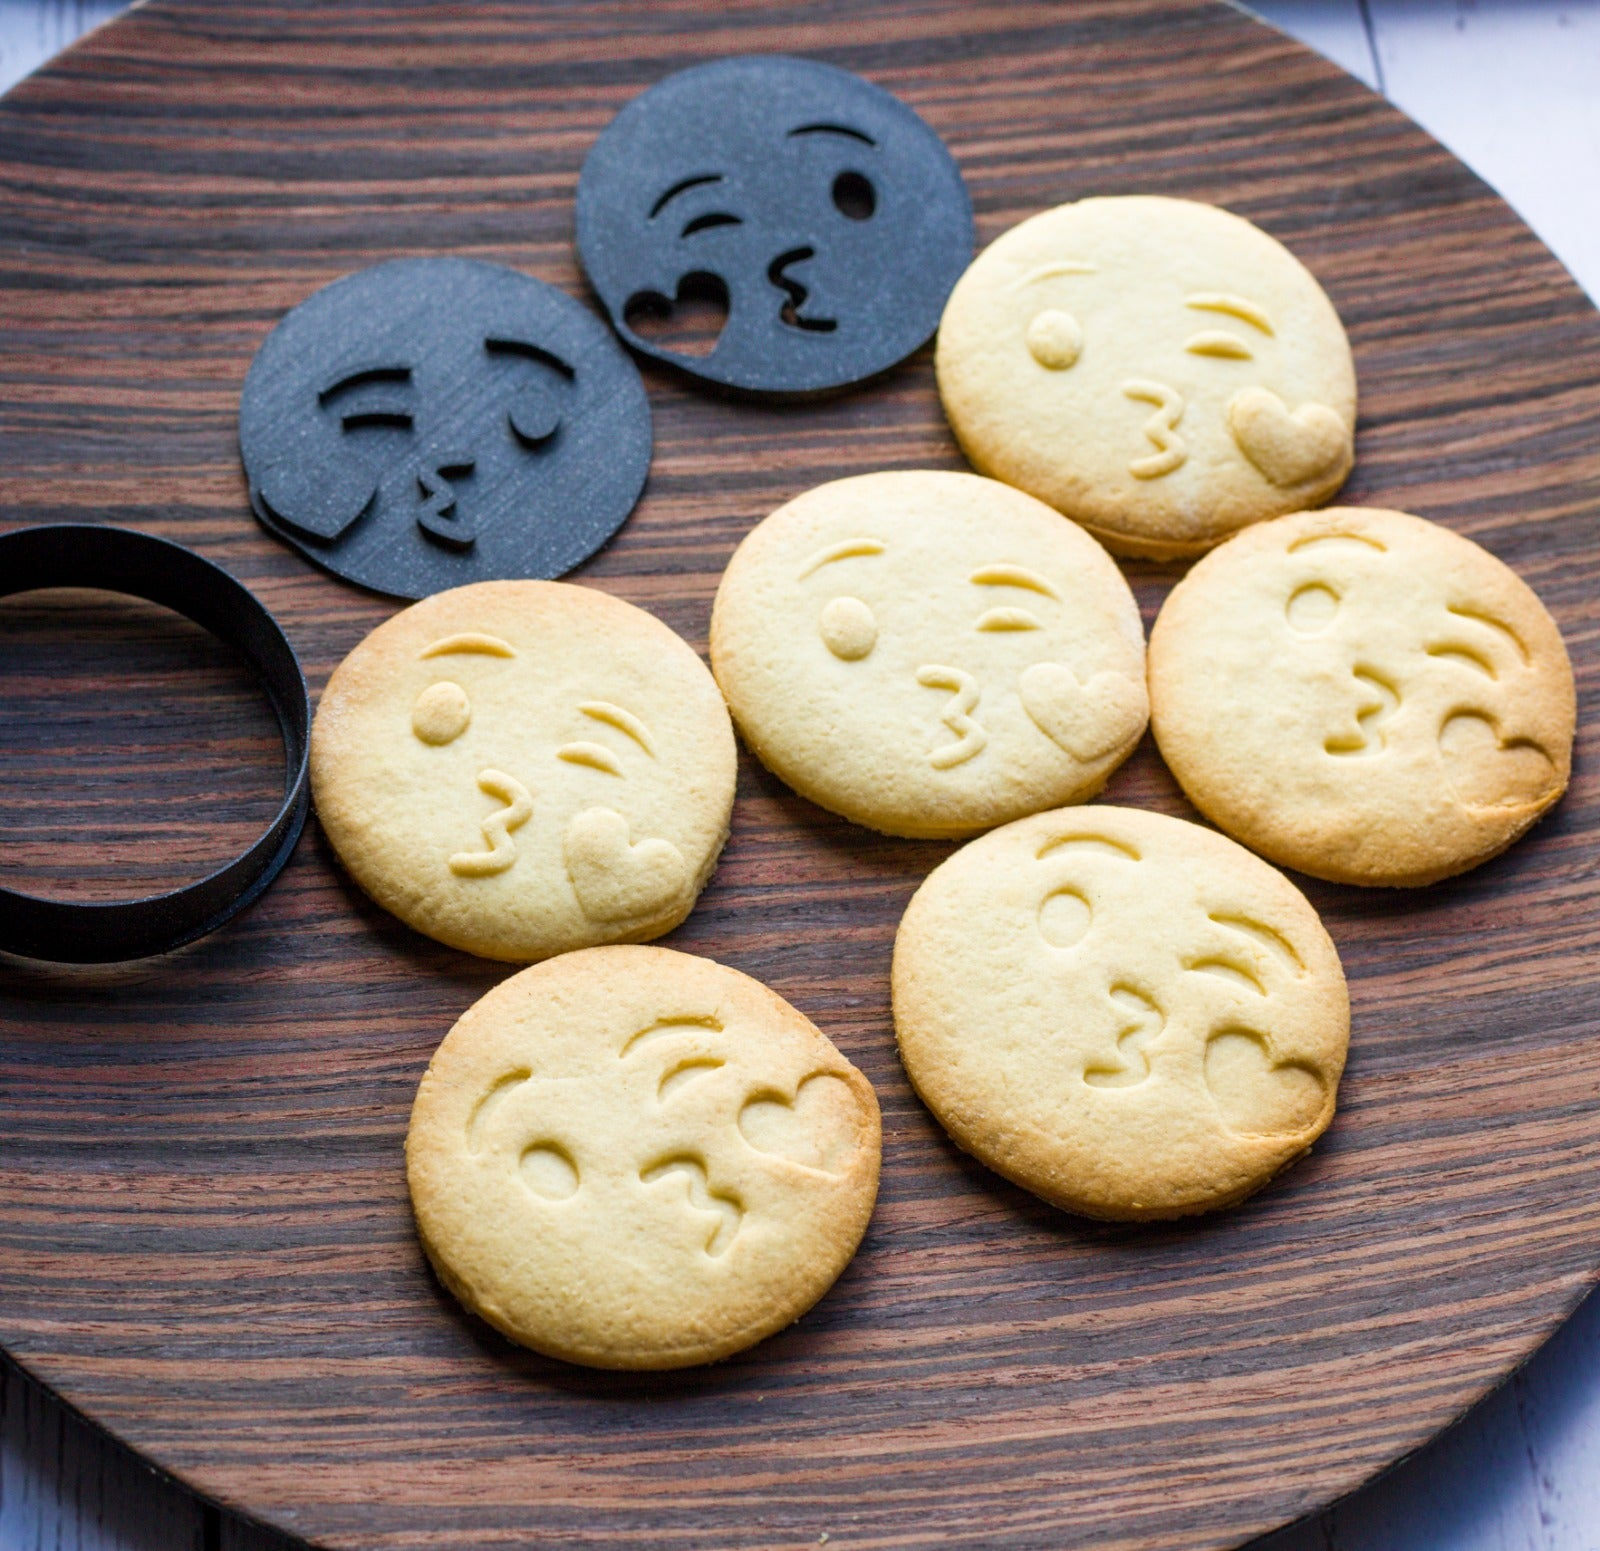 Kiss Emoji Embosser Cookie Cutter - Dolce3D Cookie Cutters